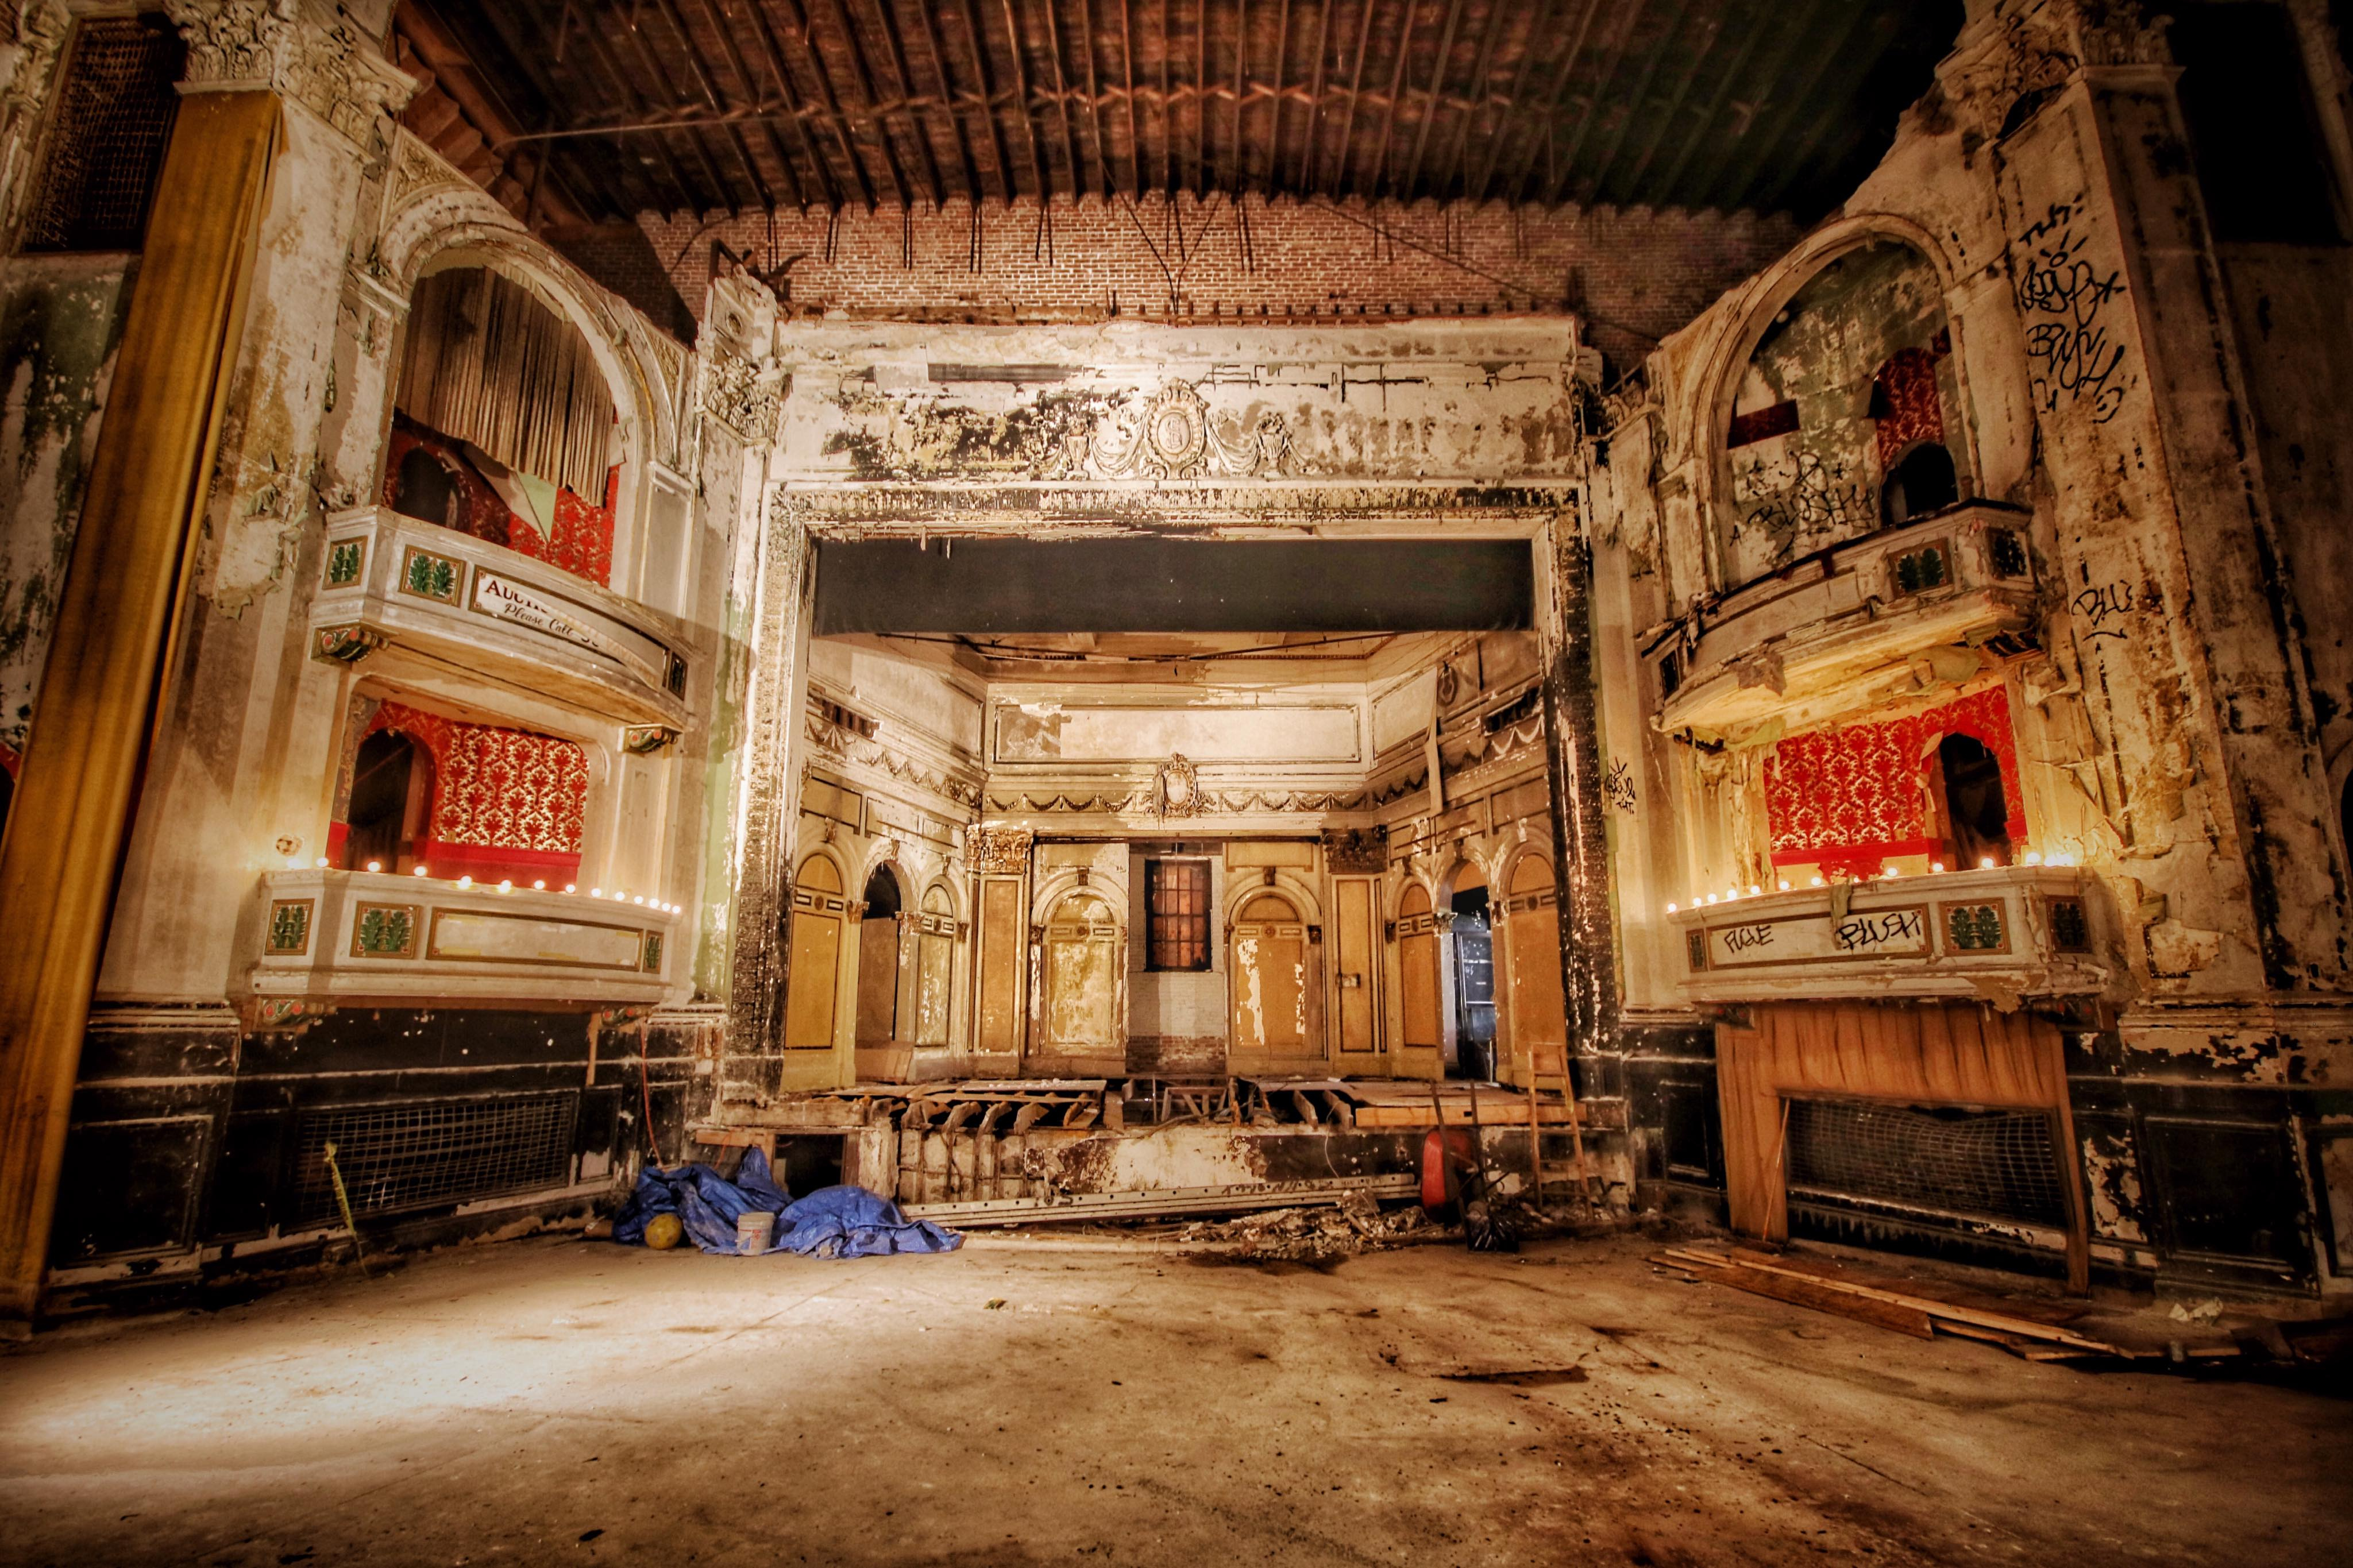 New England S Real Haunted Houses Photographer Focuses On The Area S Abandoned Buildings The Boston Globe